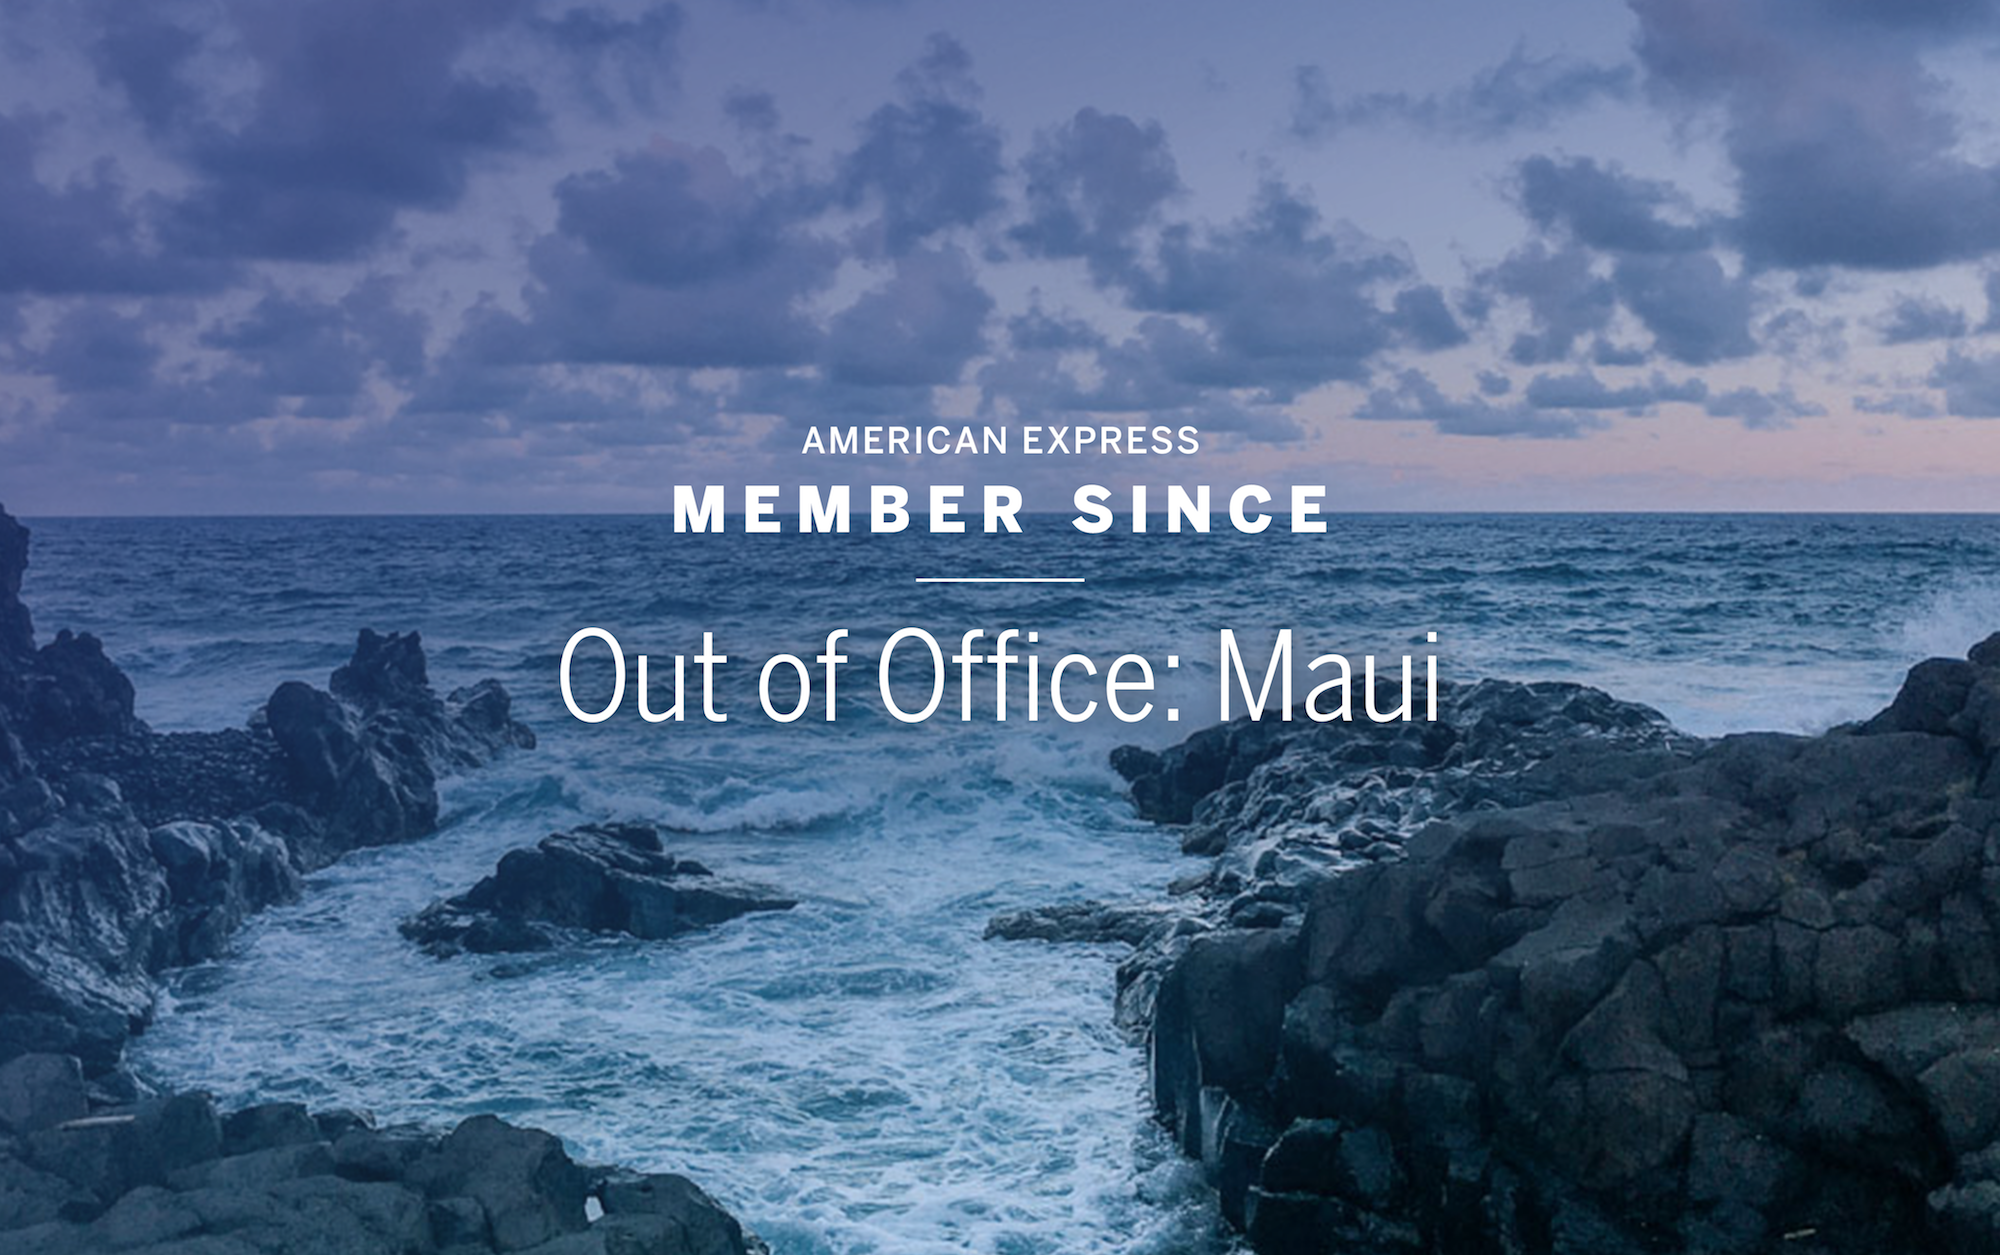 Out of Office: Maui – Member Since